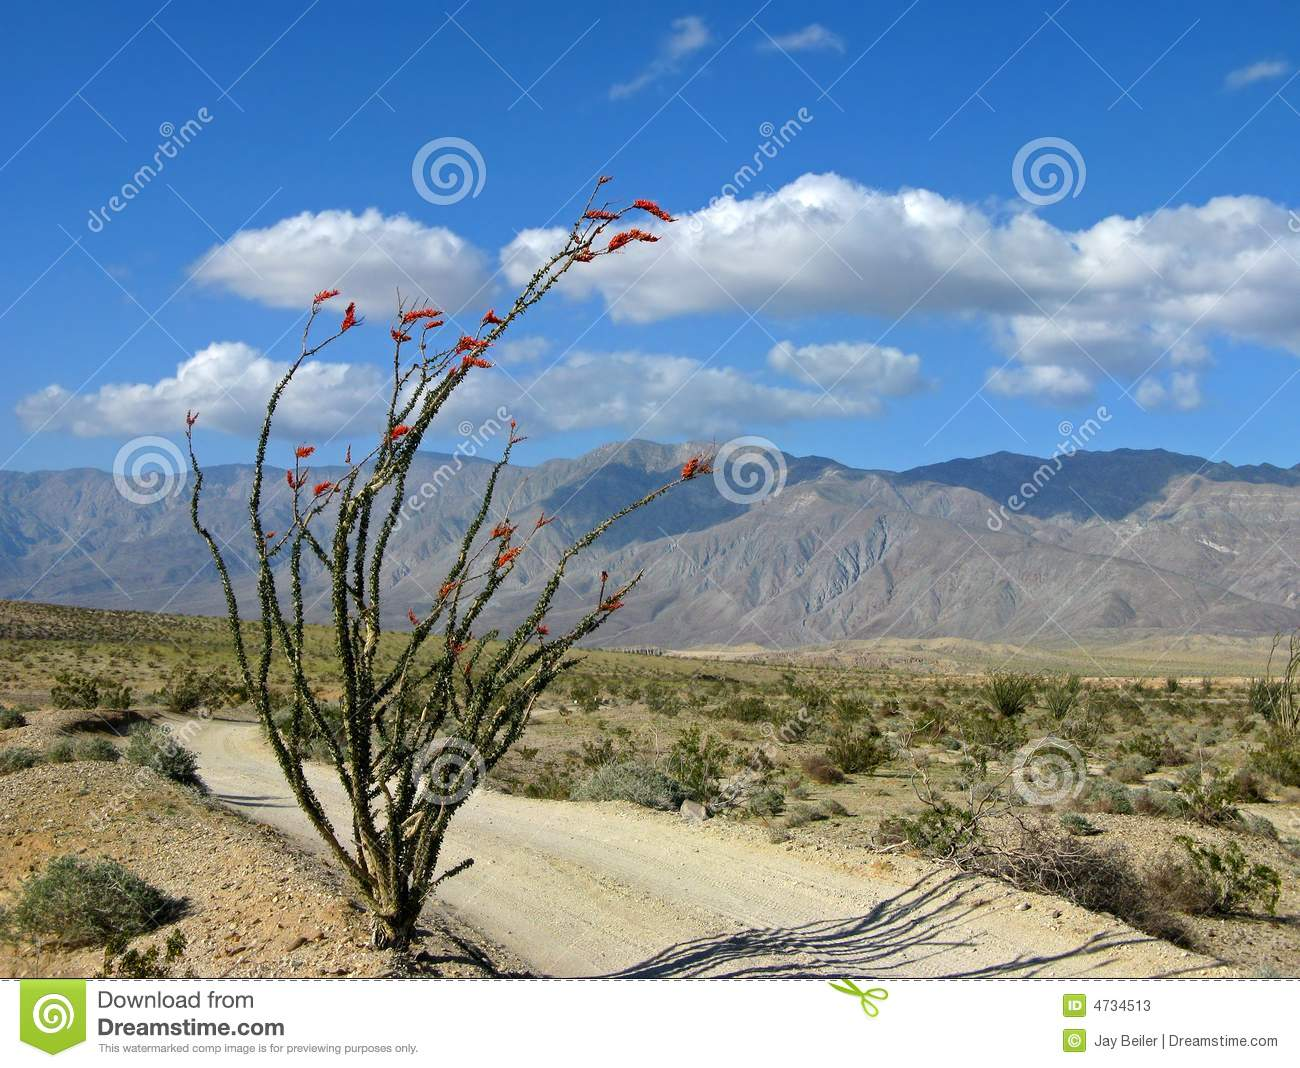 Desert trail with ocotillo